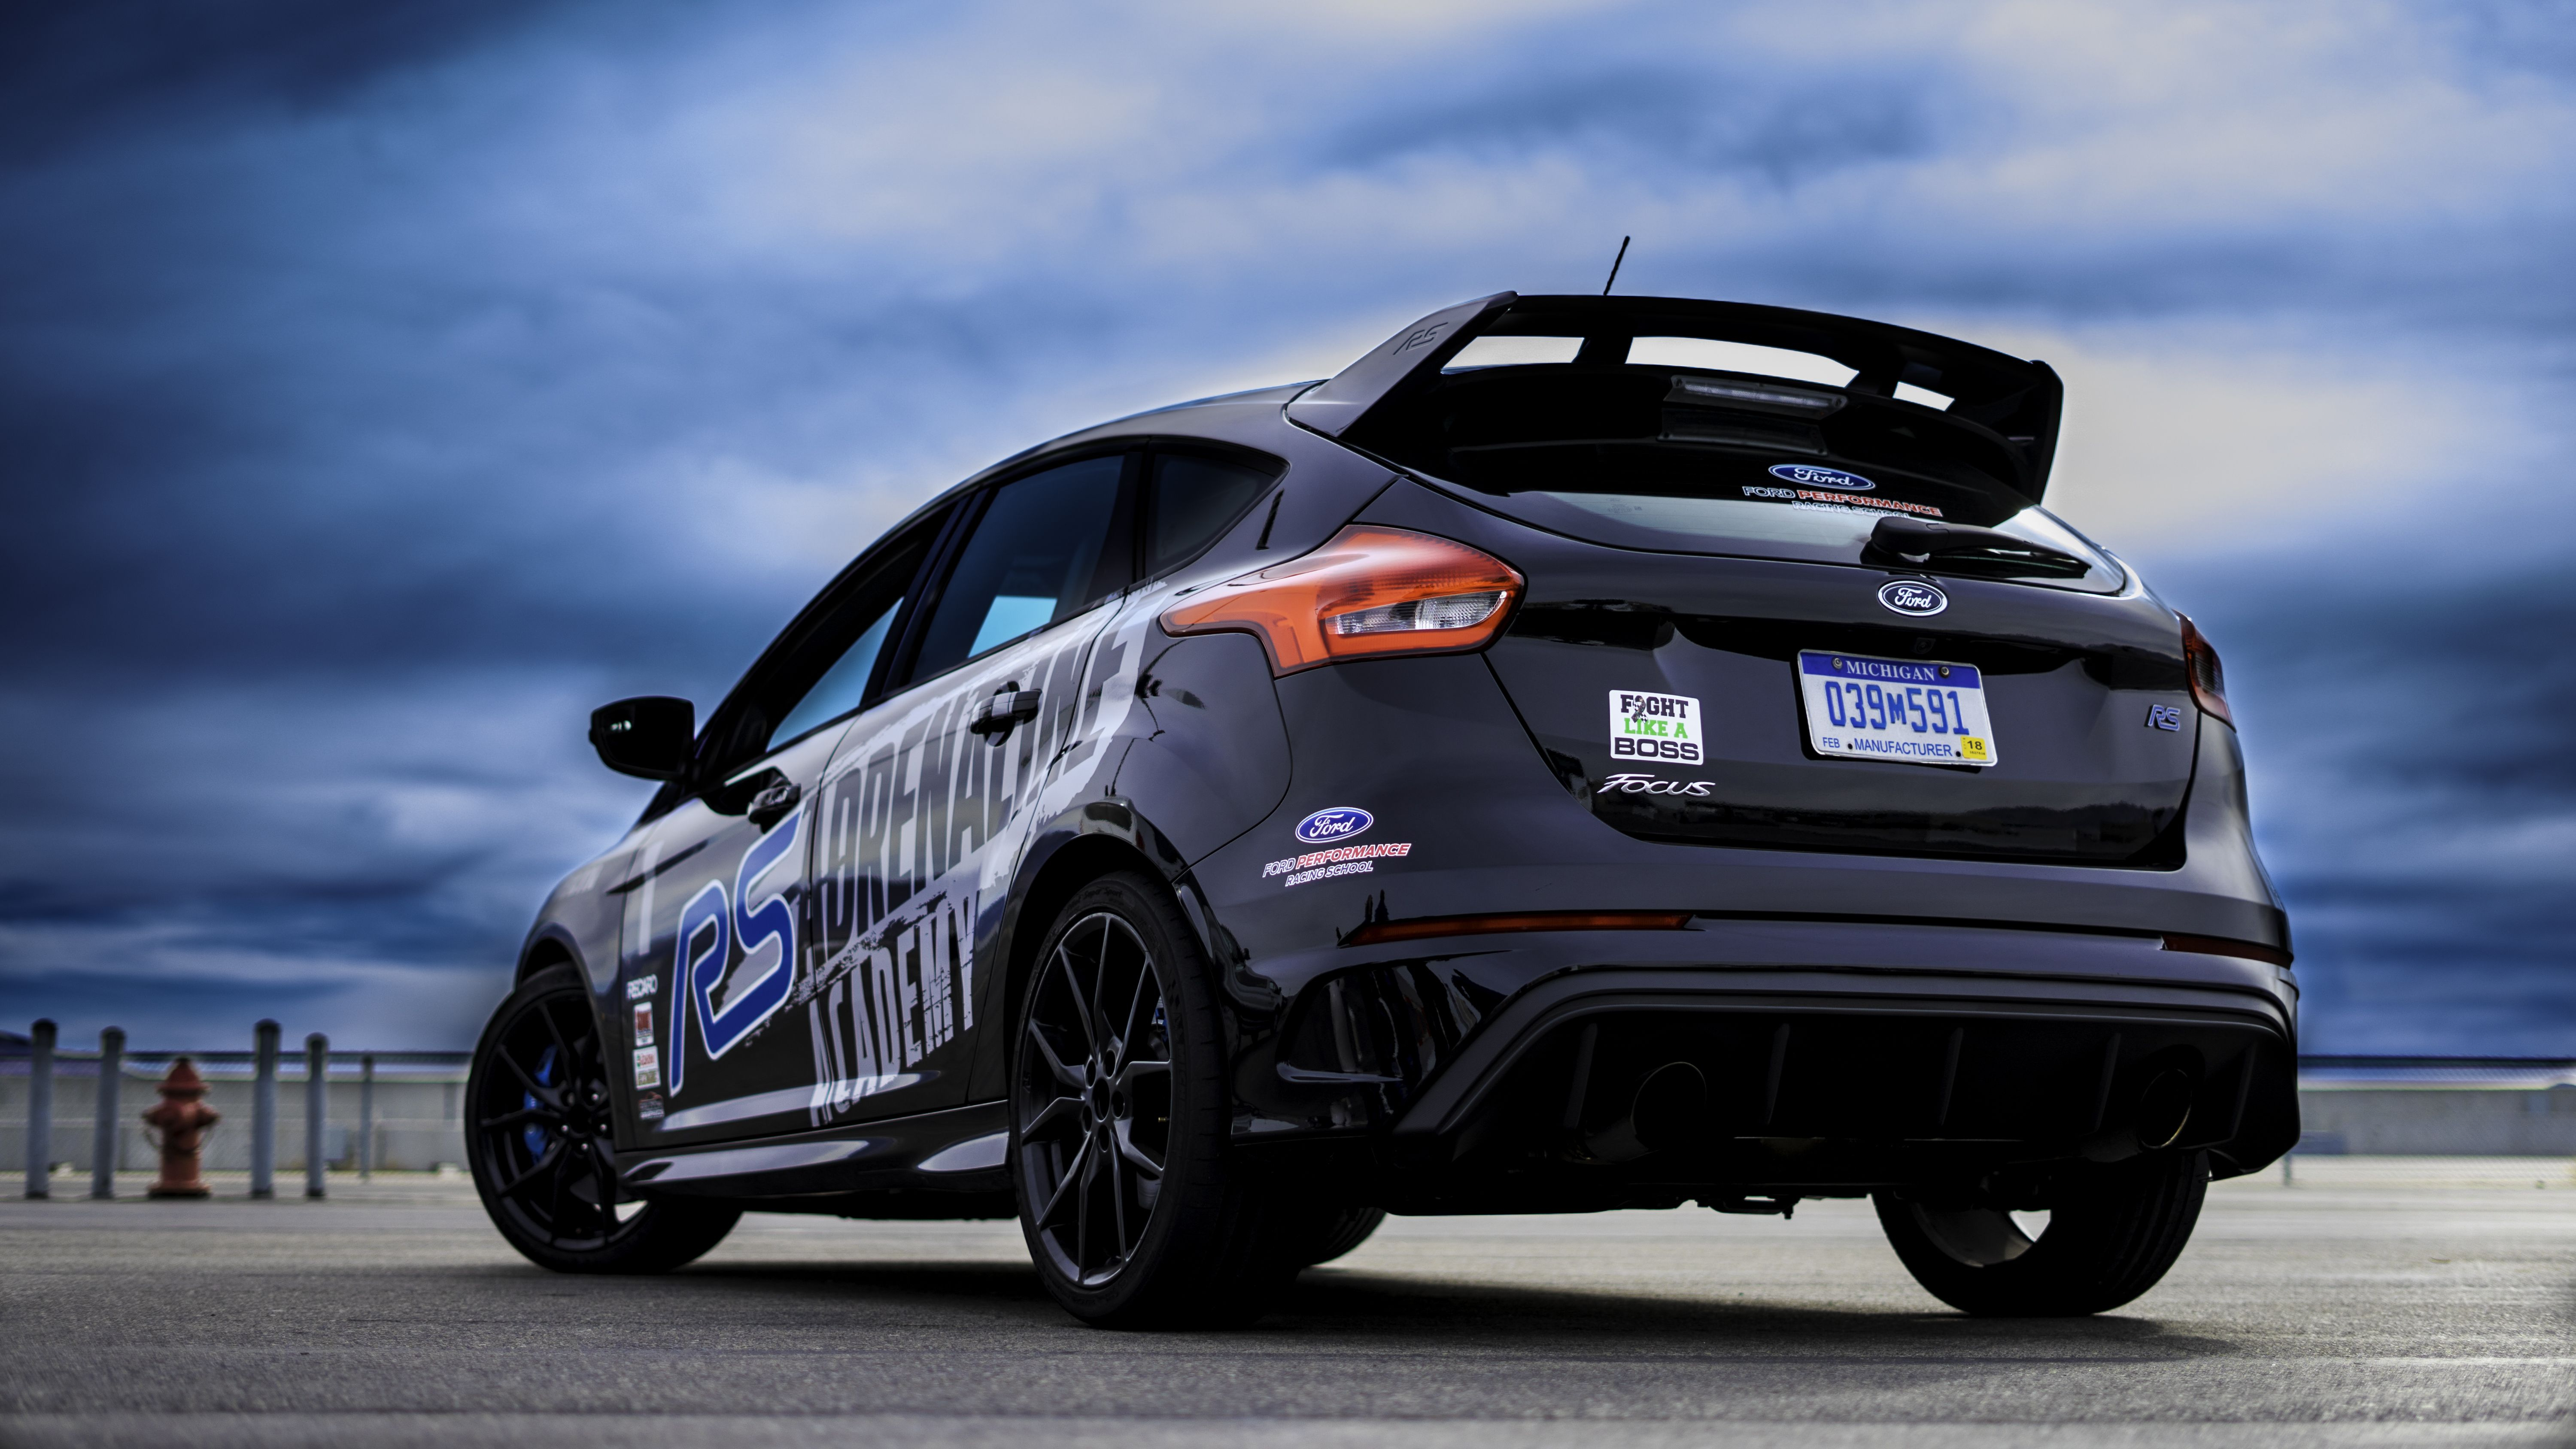 Ford Focus Rs At The Adrenaline Academy In Utah Check Out The